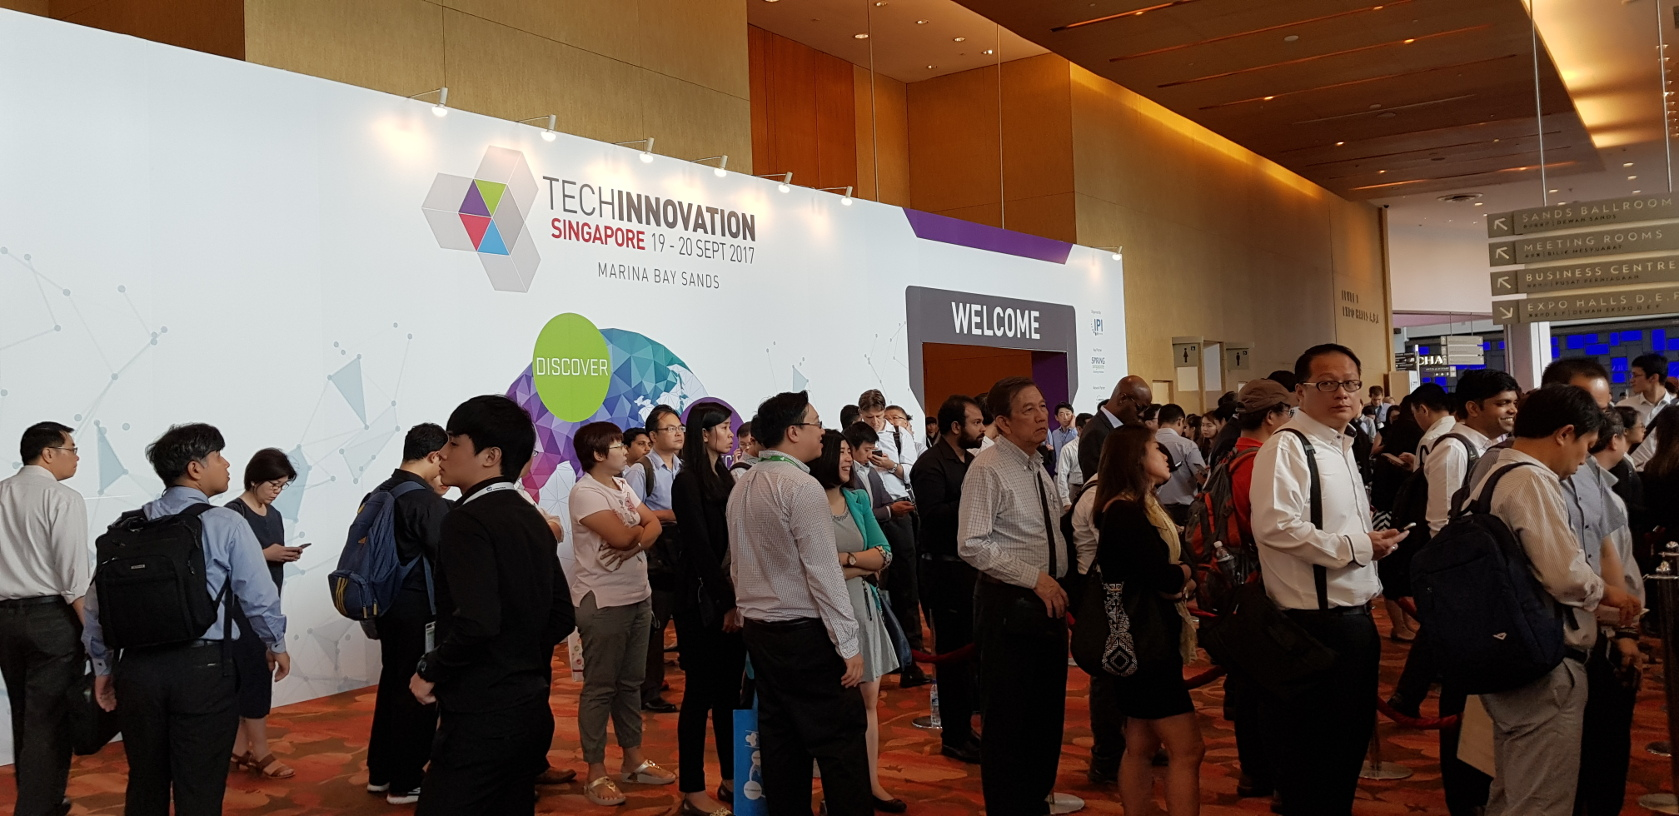 Trade visitors queuing to get their event badge for Techinnovation image